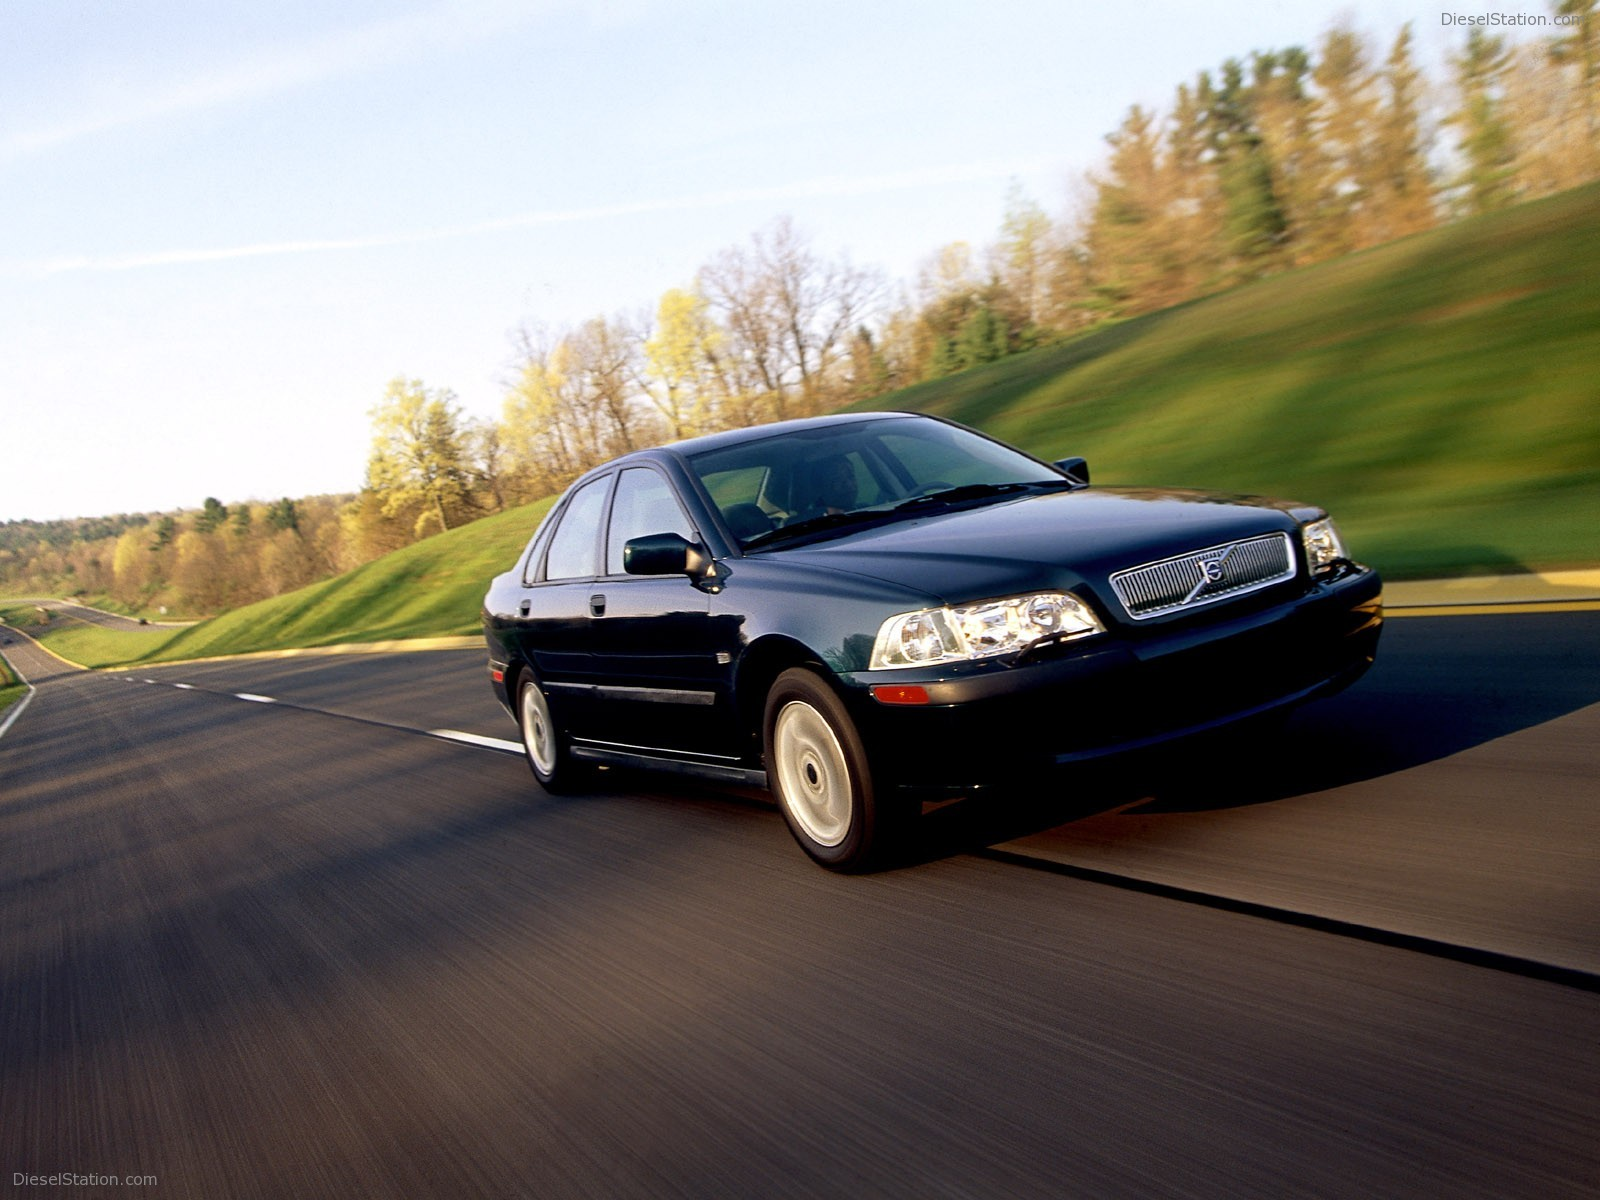 Volvo S40 1995 Exotic Car Wallpapers 008 of 13 Diesel Station 1600x1200